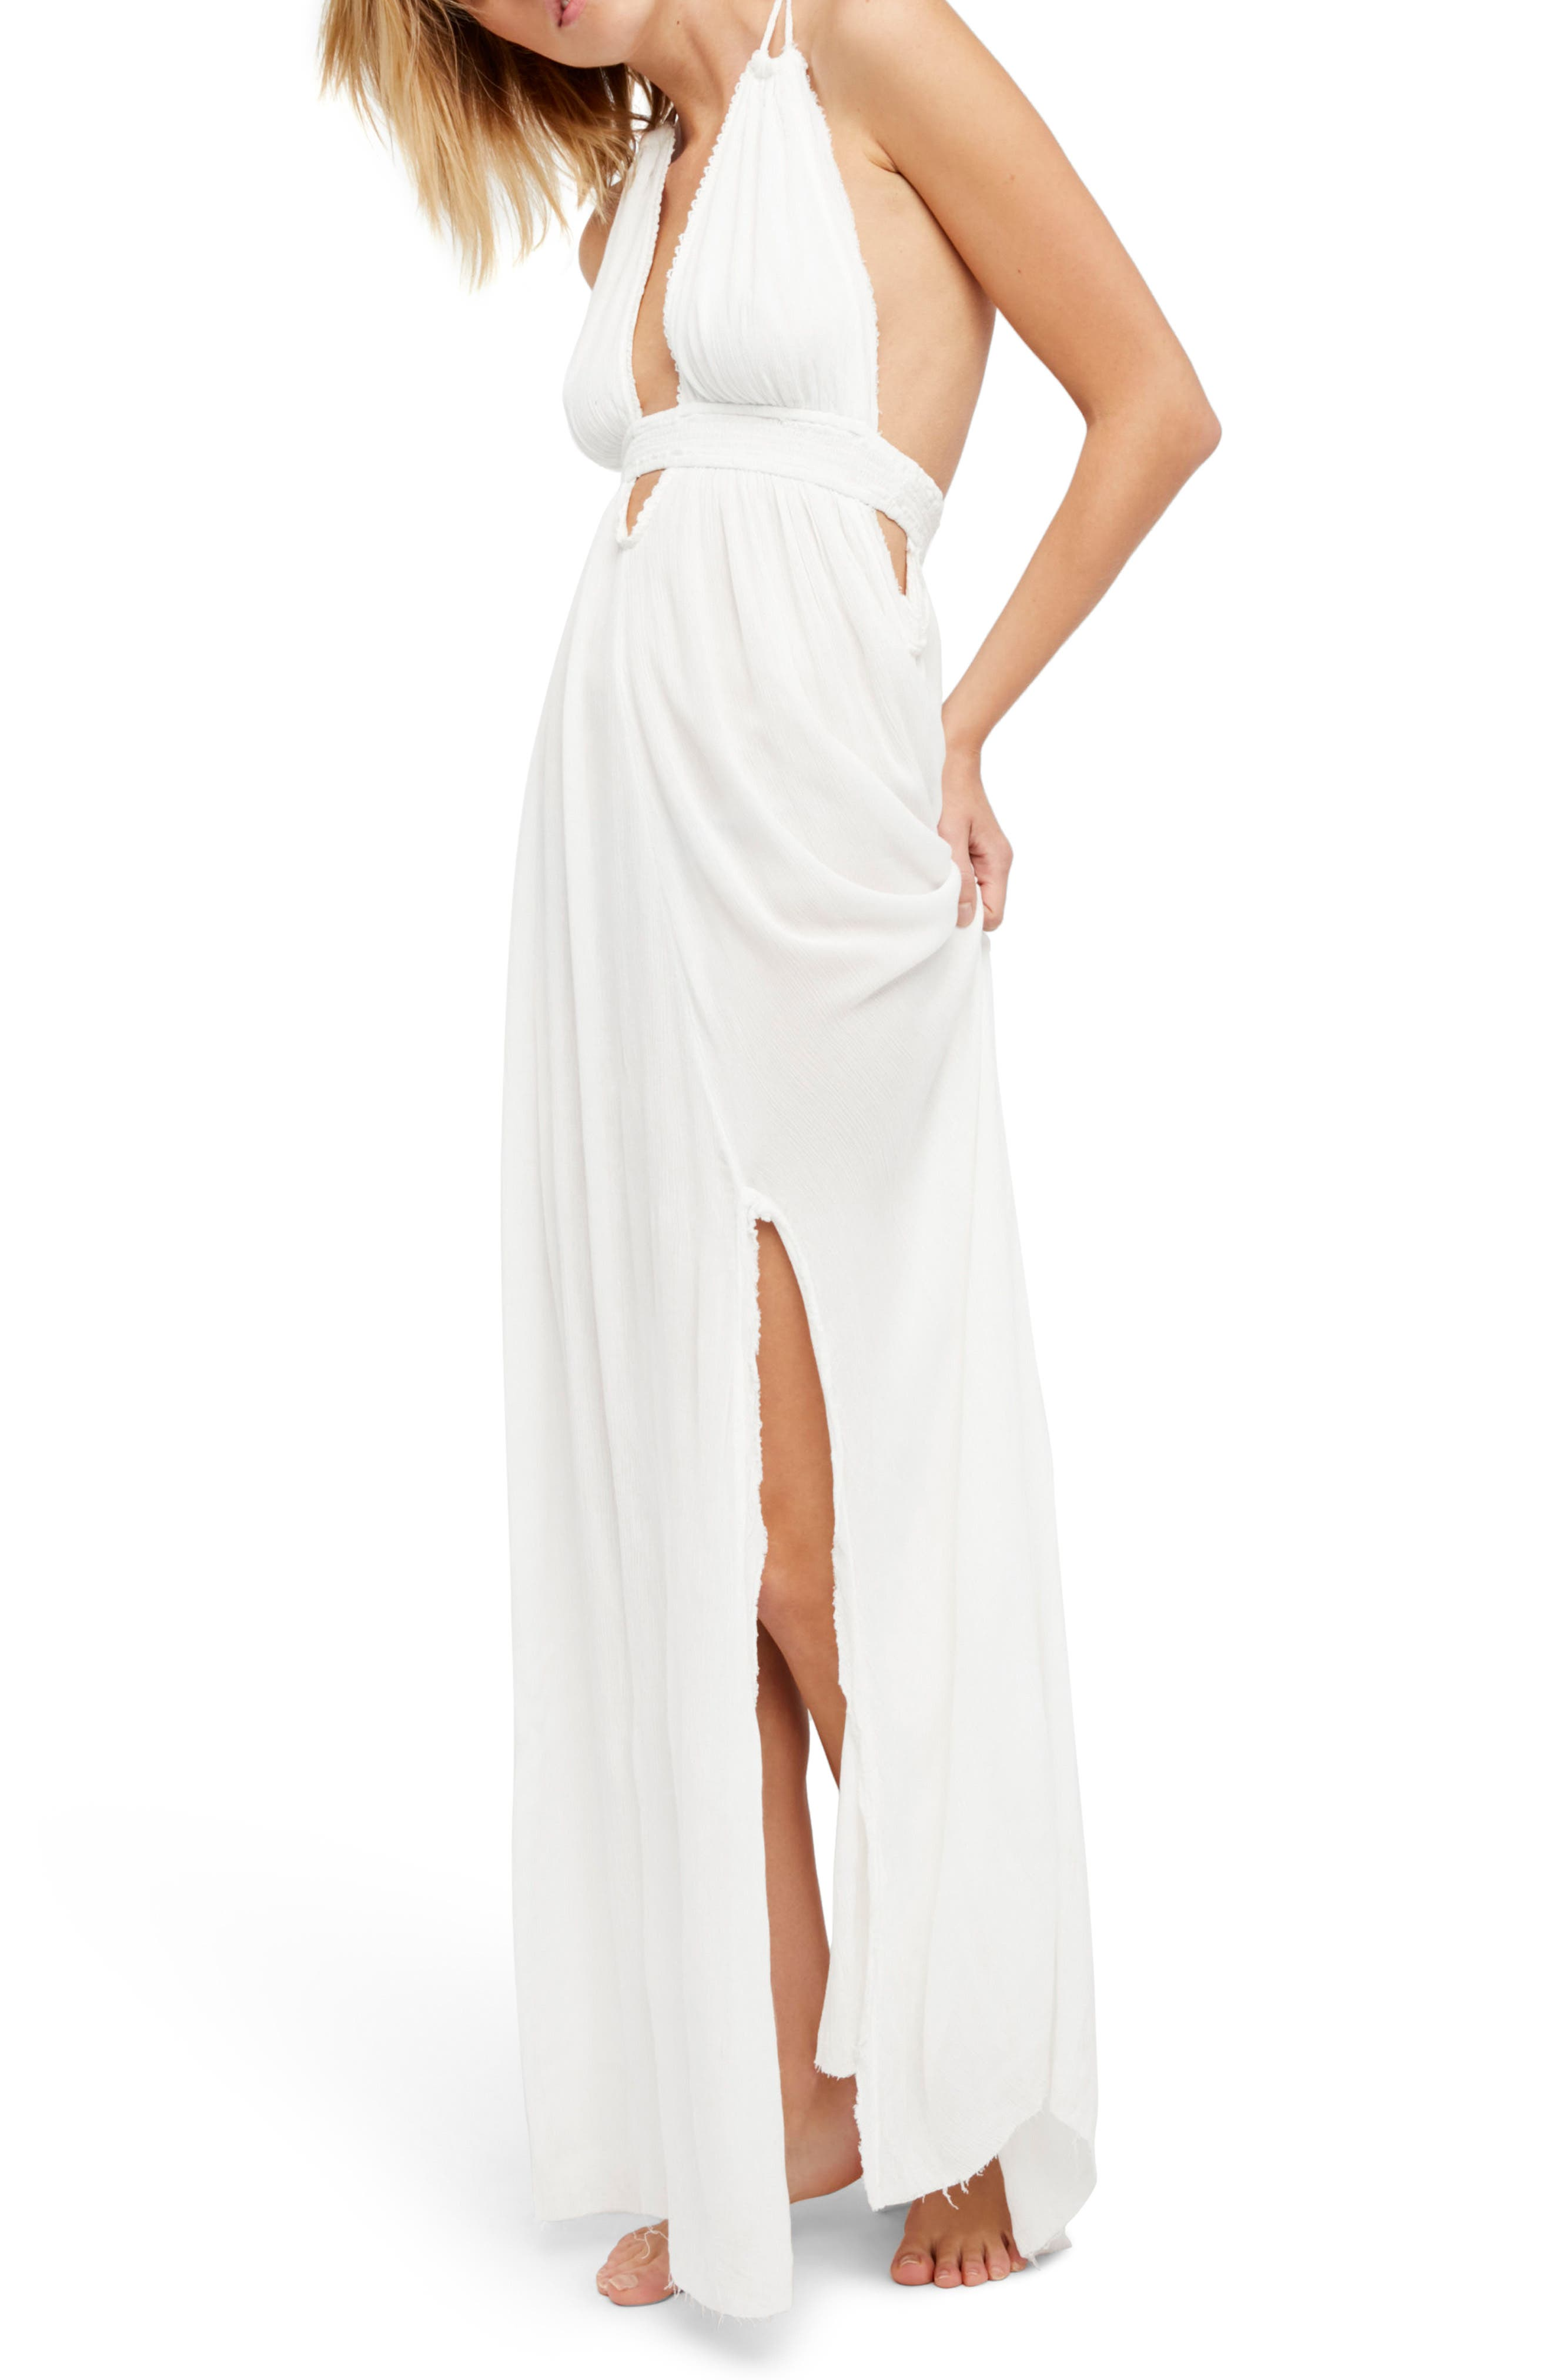 Endless Summer by Free People Look into the Sun Maxi Dress,                             Main thumbnail 1, color,                             Ivory